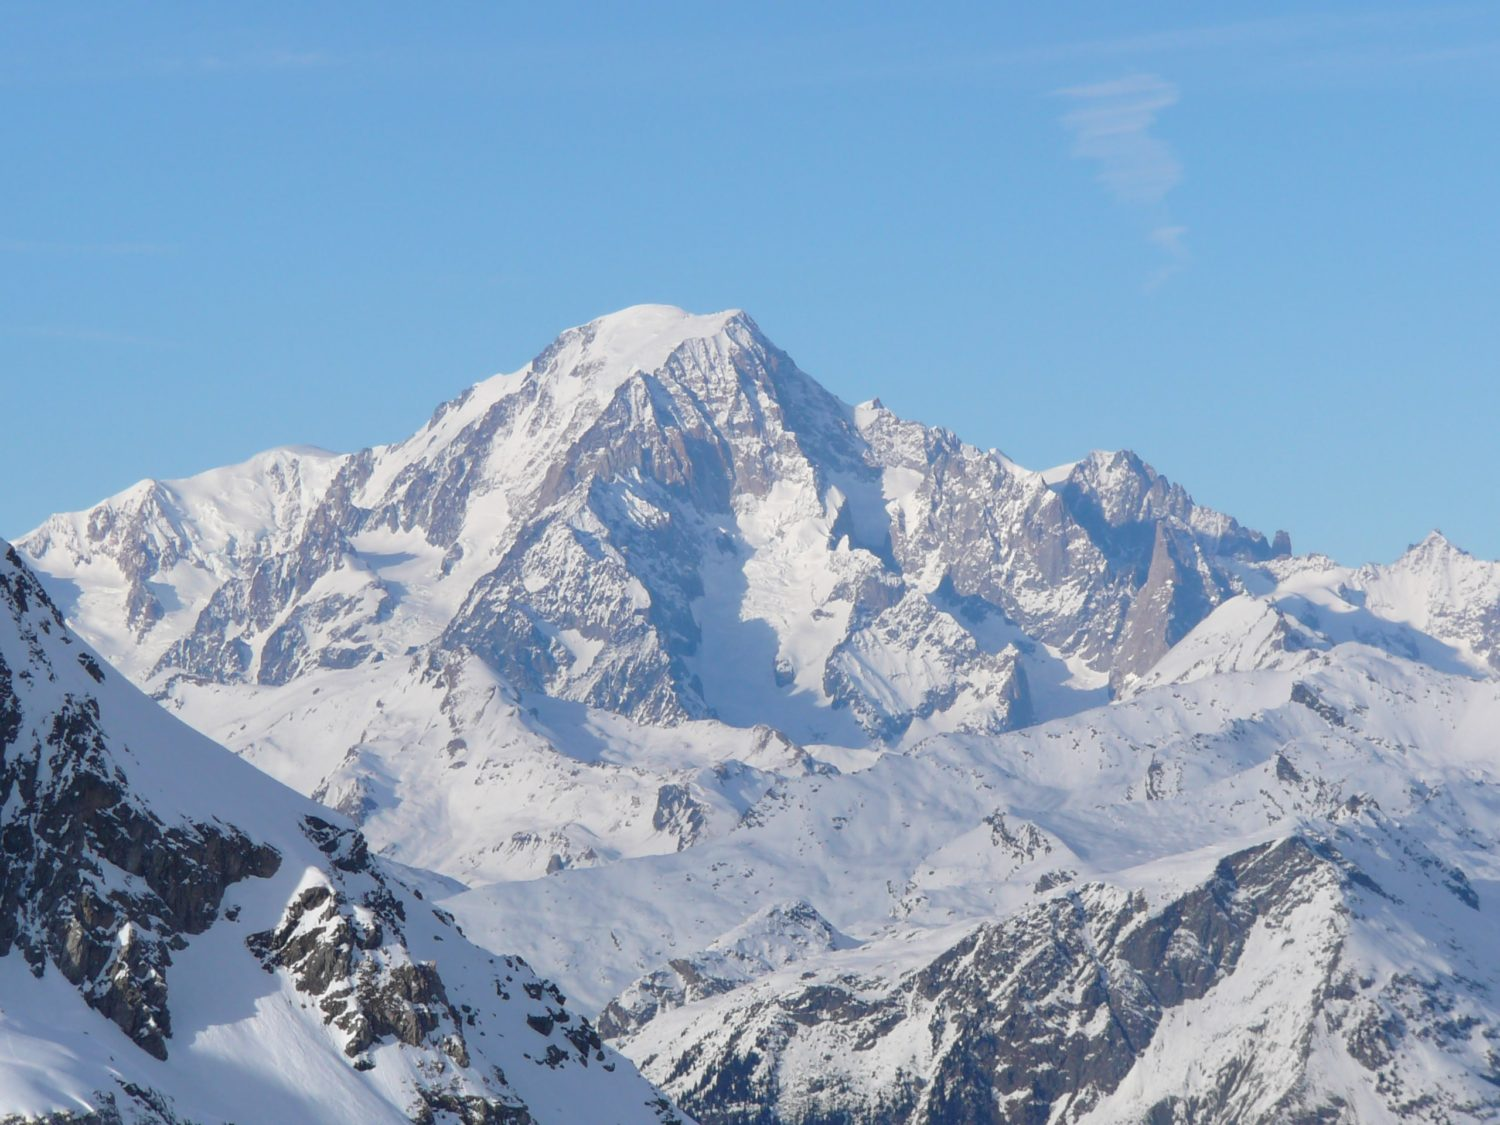 Mont Blanc, France, Italy, Chamonix, Alps, Highest peak in Europe